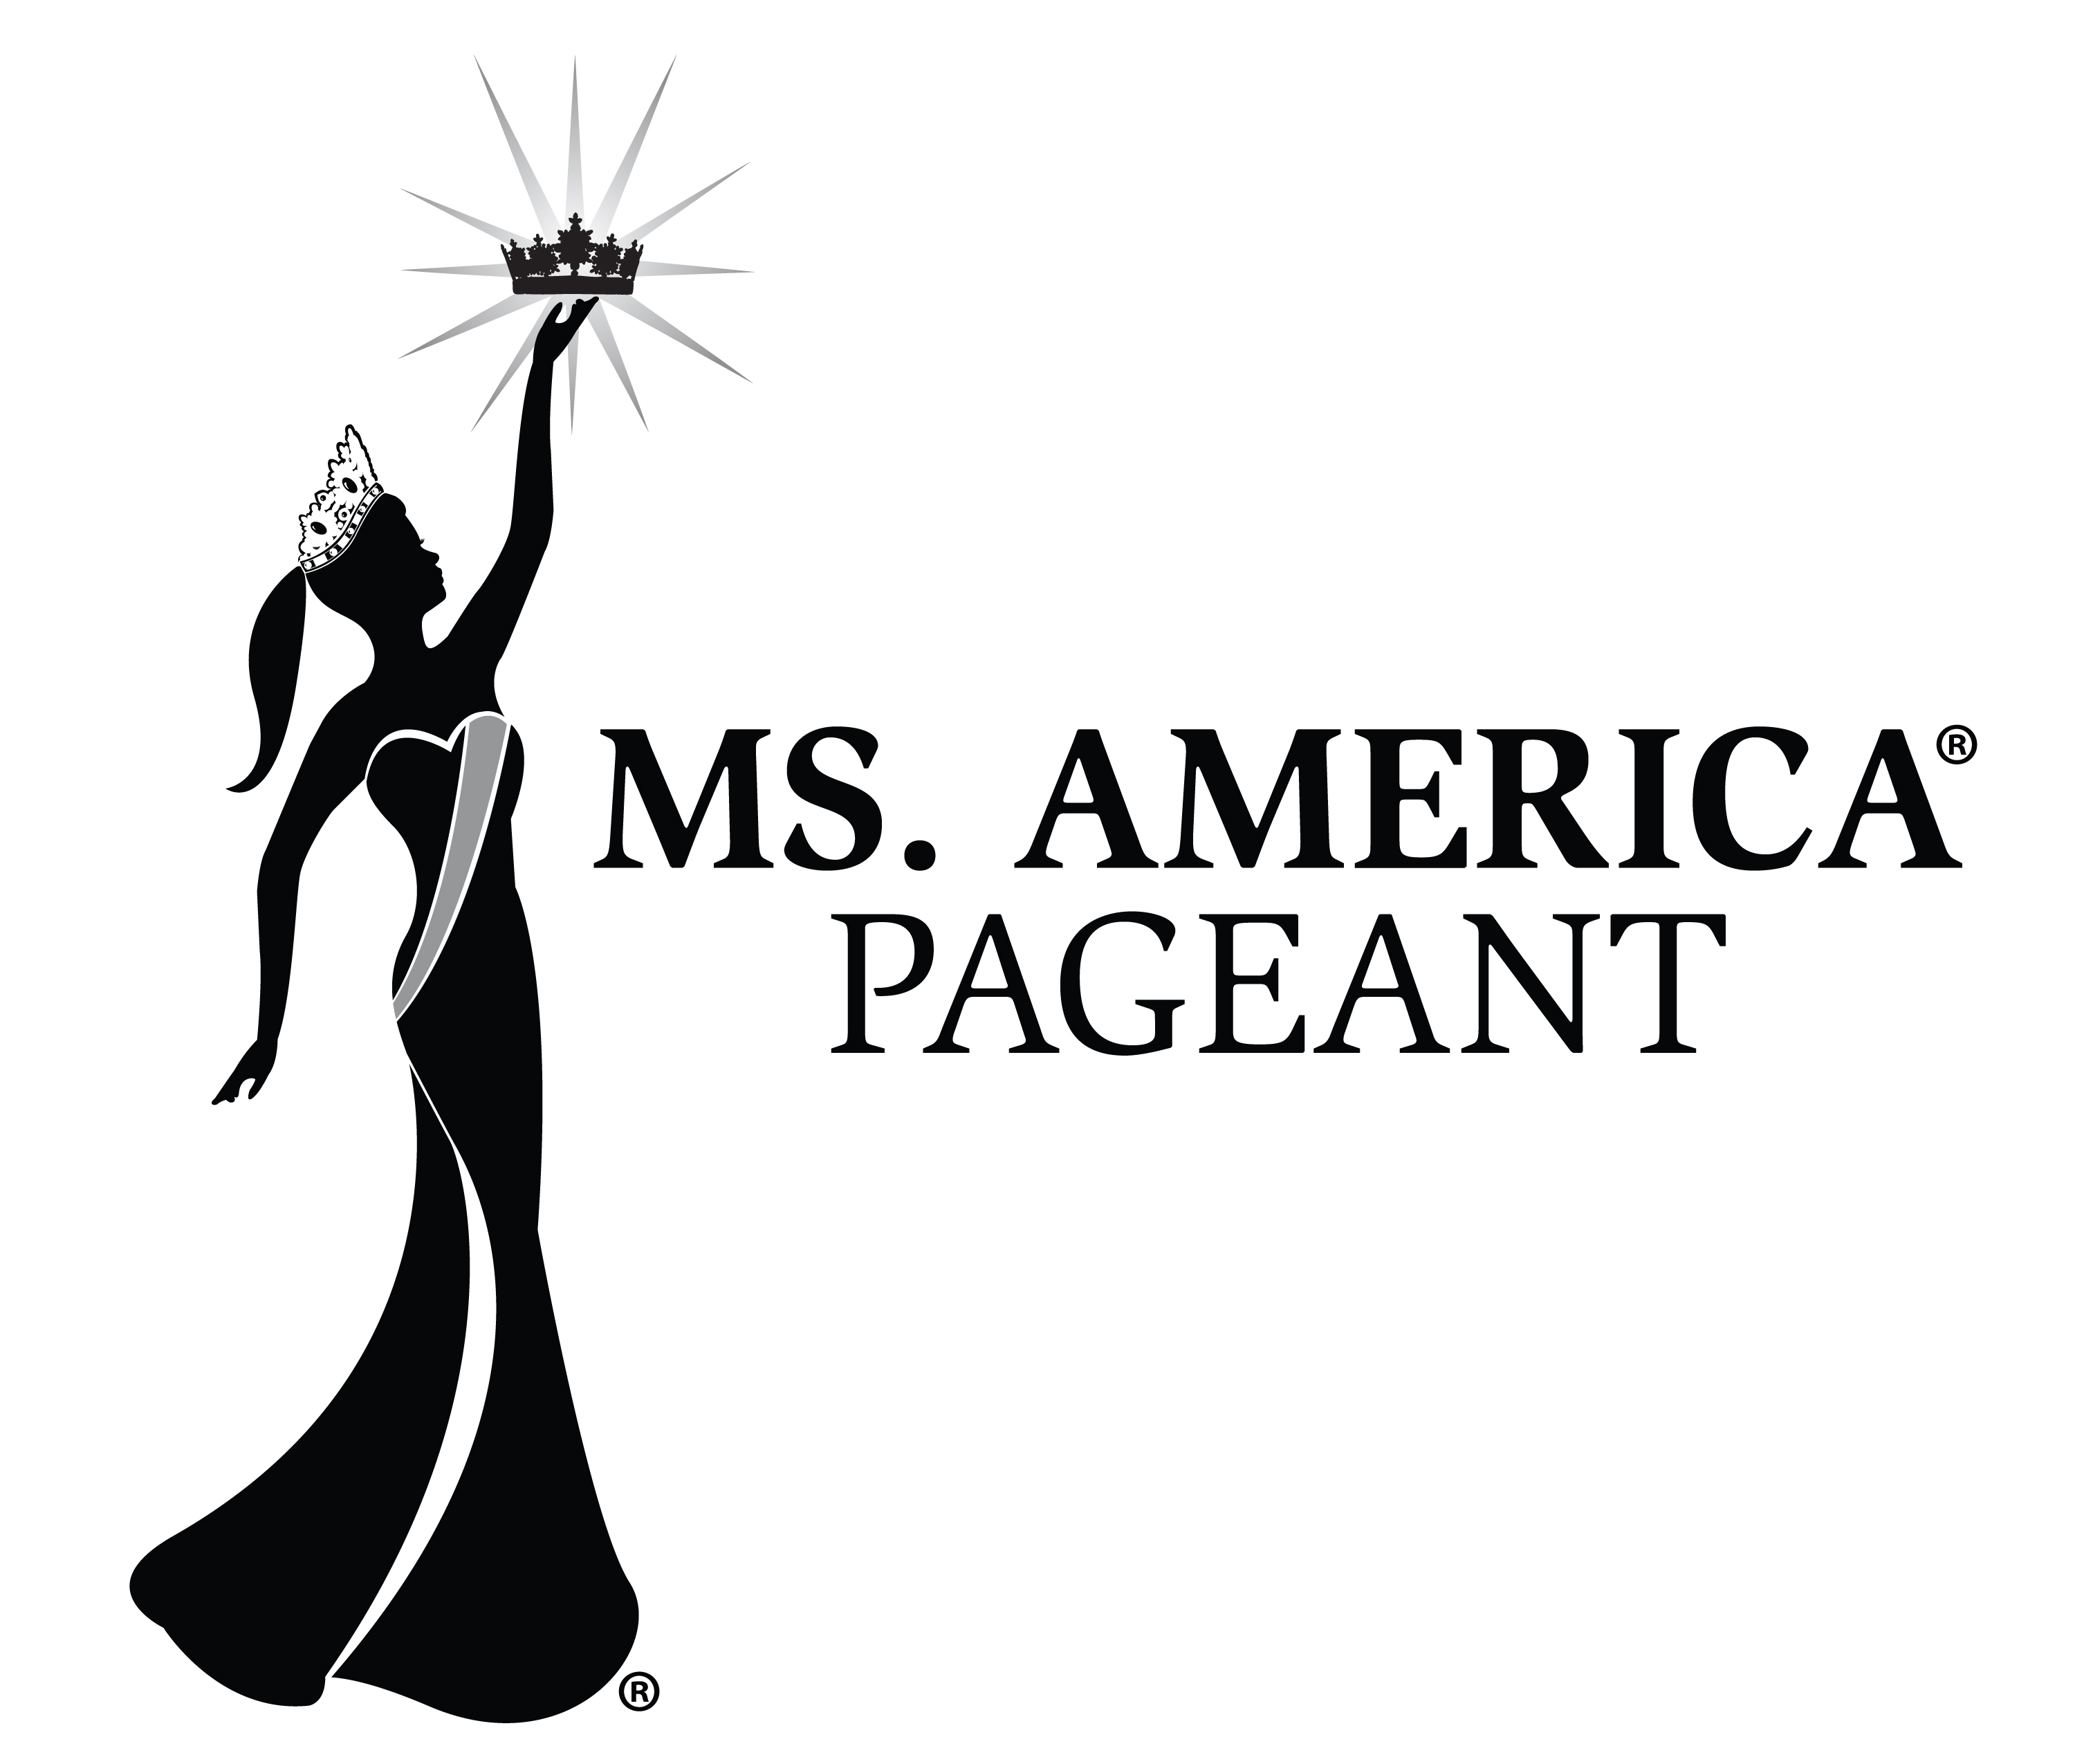 ms america pageant the official logo of the ms america pageant no one is permitted to use